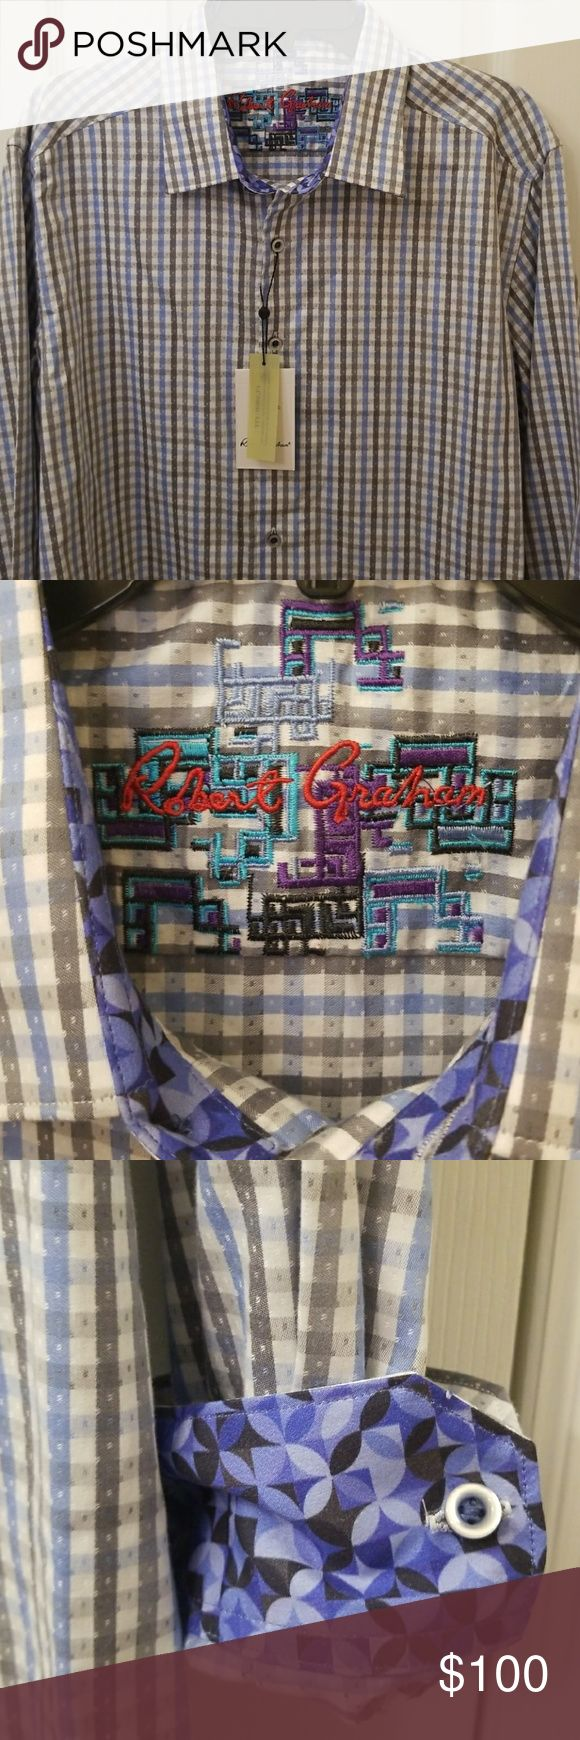 Robert Graham  Shirt  Size XL  NWT Mens Robert Graham button down shirt size XL - brand new with tags - never used - beautiful Robert Graham detail on the sleeve cuff  - chek pattern pre owned NEVER USED - blue , grey & white chek pattern, classic fit Robert Graham Shirts